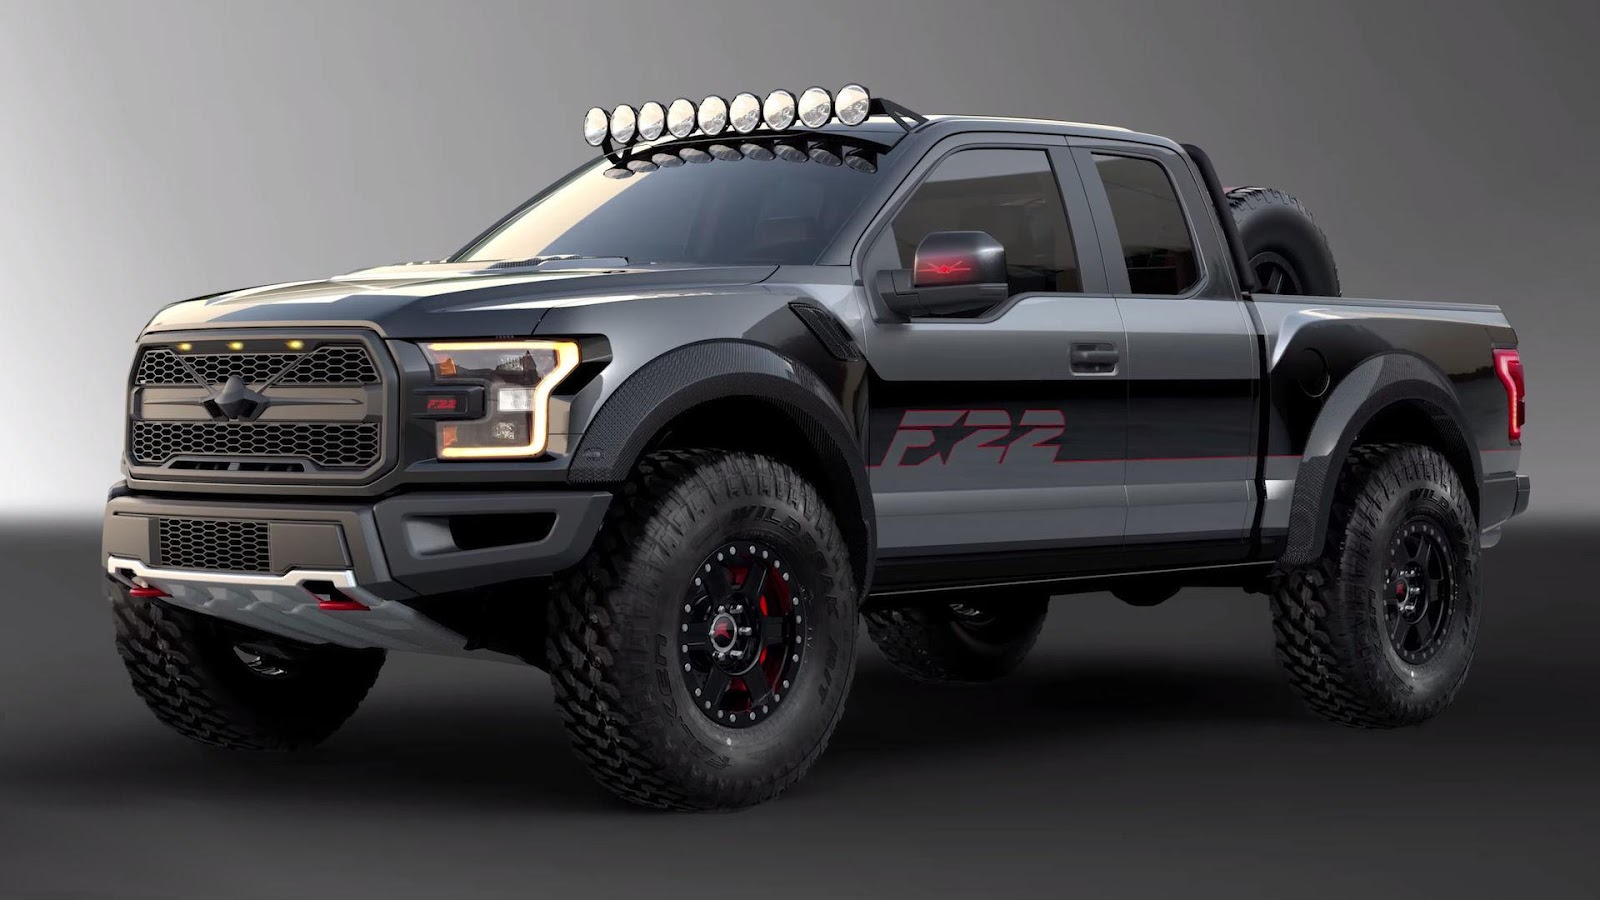 fighter jet inspired ford f 150 raptor boasts 545 hp wilder looks carscoops. Black Bedroom Furniture Sets. Home Design Ideas